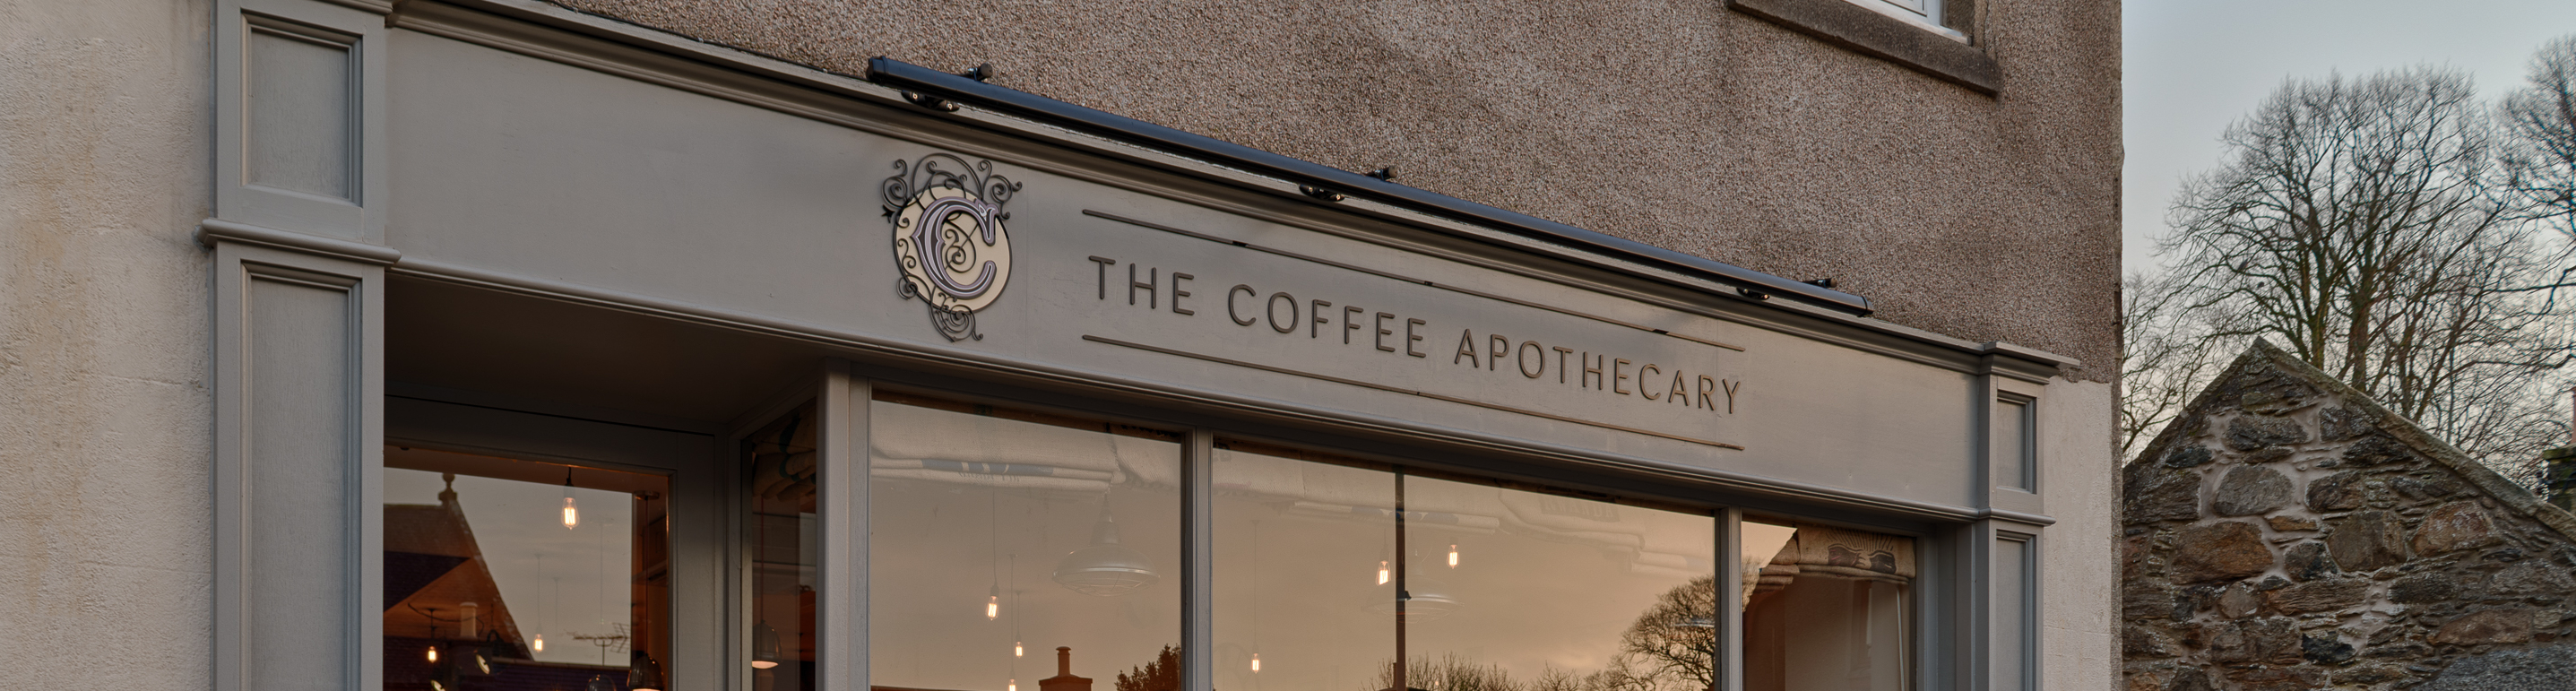 BREWDOG AND THE COFFEE APOTHECARY